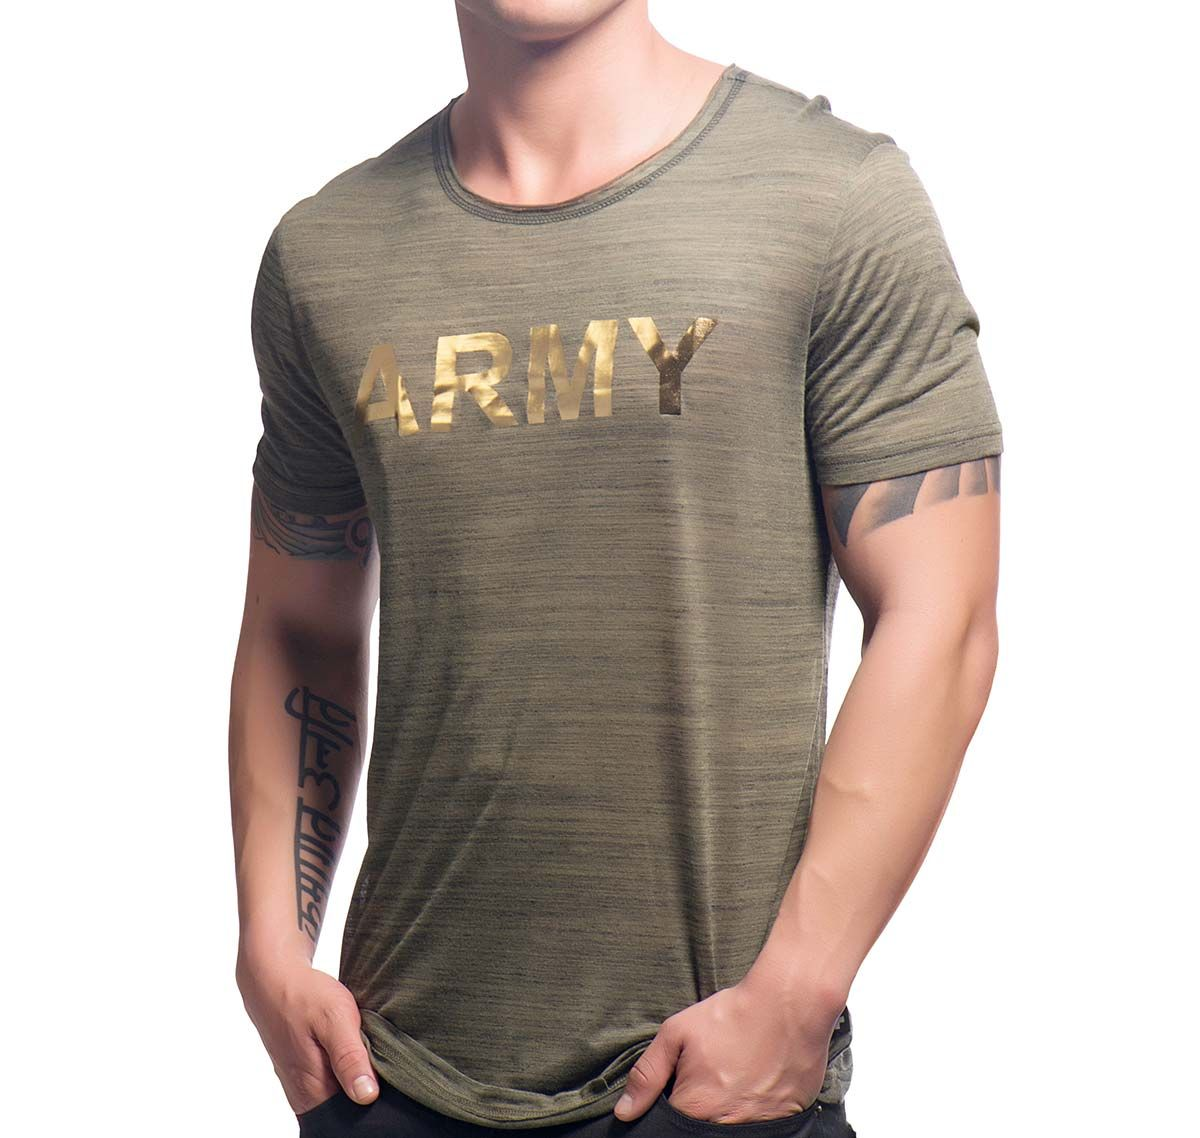 Andrew Christian Maglietta GLAM ARMY TEE 10241, army